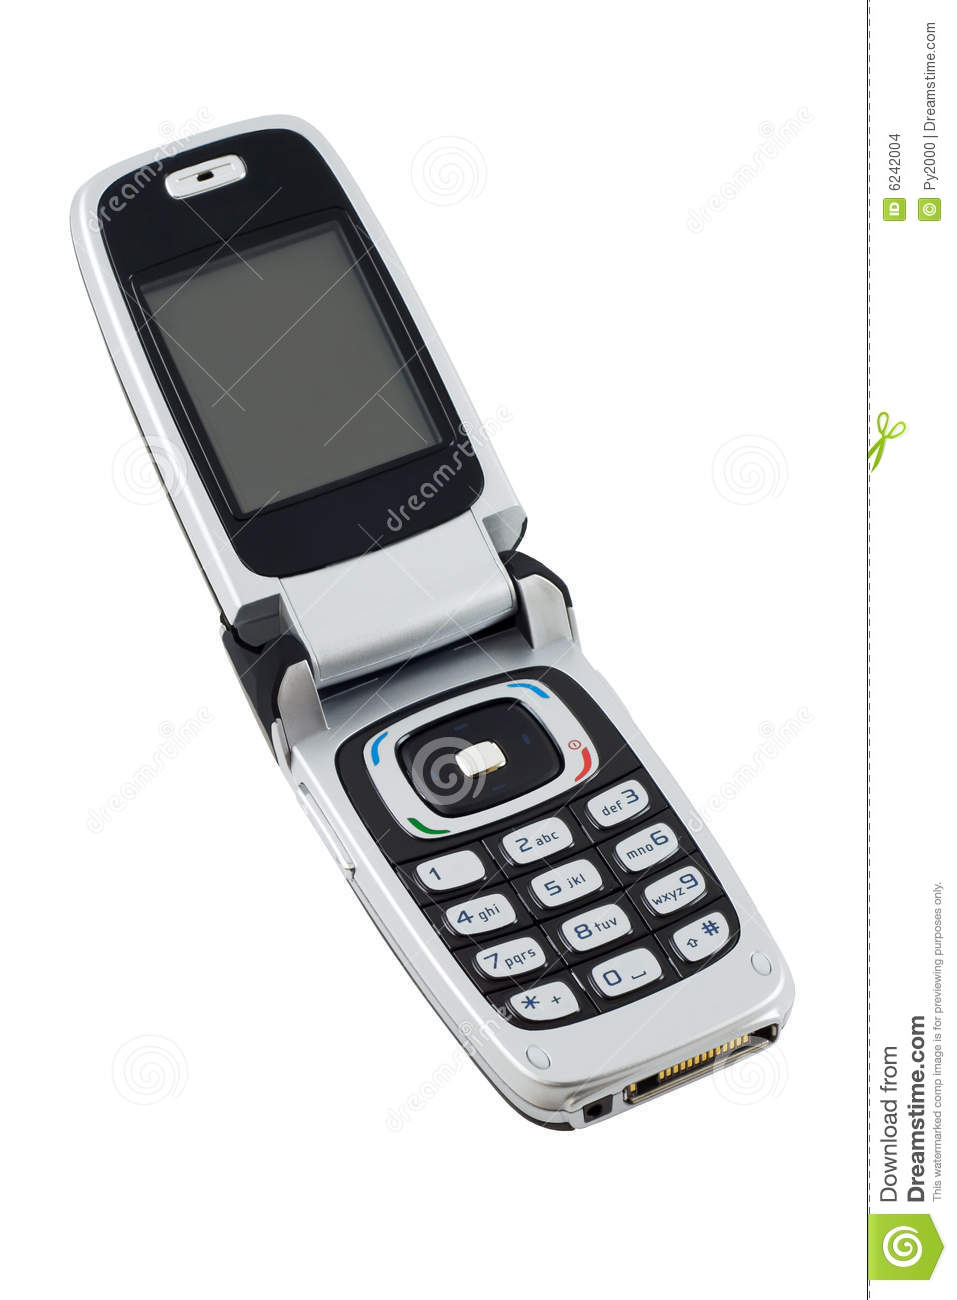 Clamshell Phone Clipart Clipground